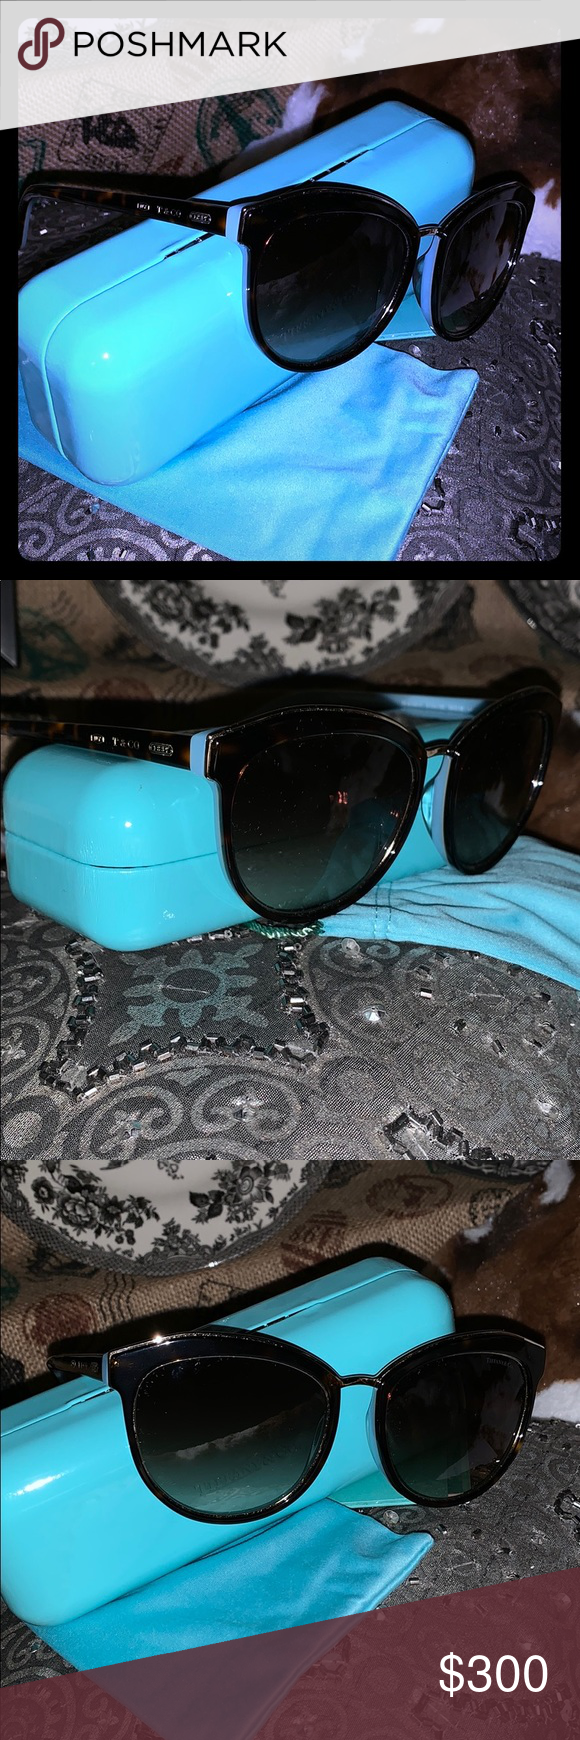 0e7c1d18d87e ... Tiffany Sunnies 🌺 Brand new never used Authentic Tiffany   Co. Sunnies  - dust bag - paperwork - case BRAND NEW Tiffany   Co. Accessories Sunglasses